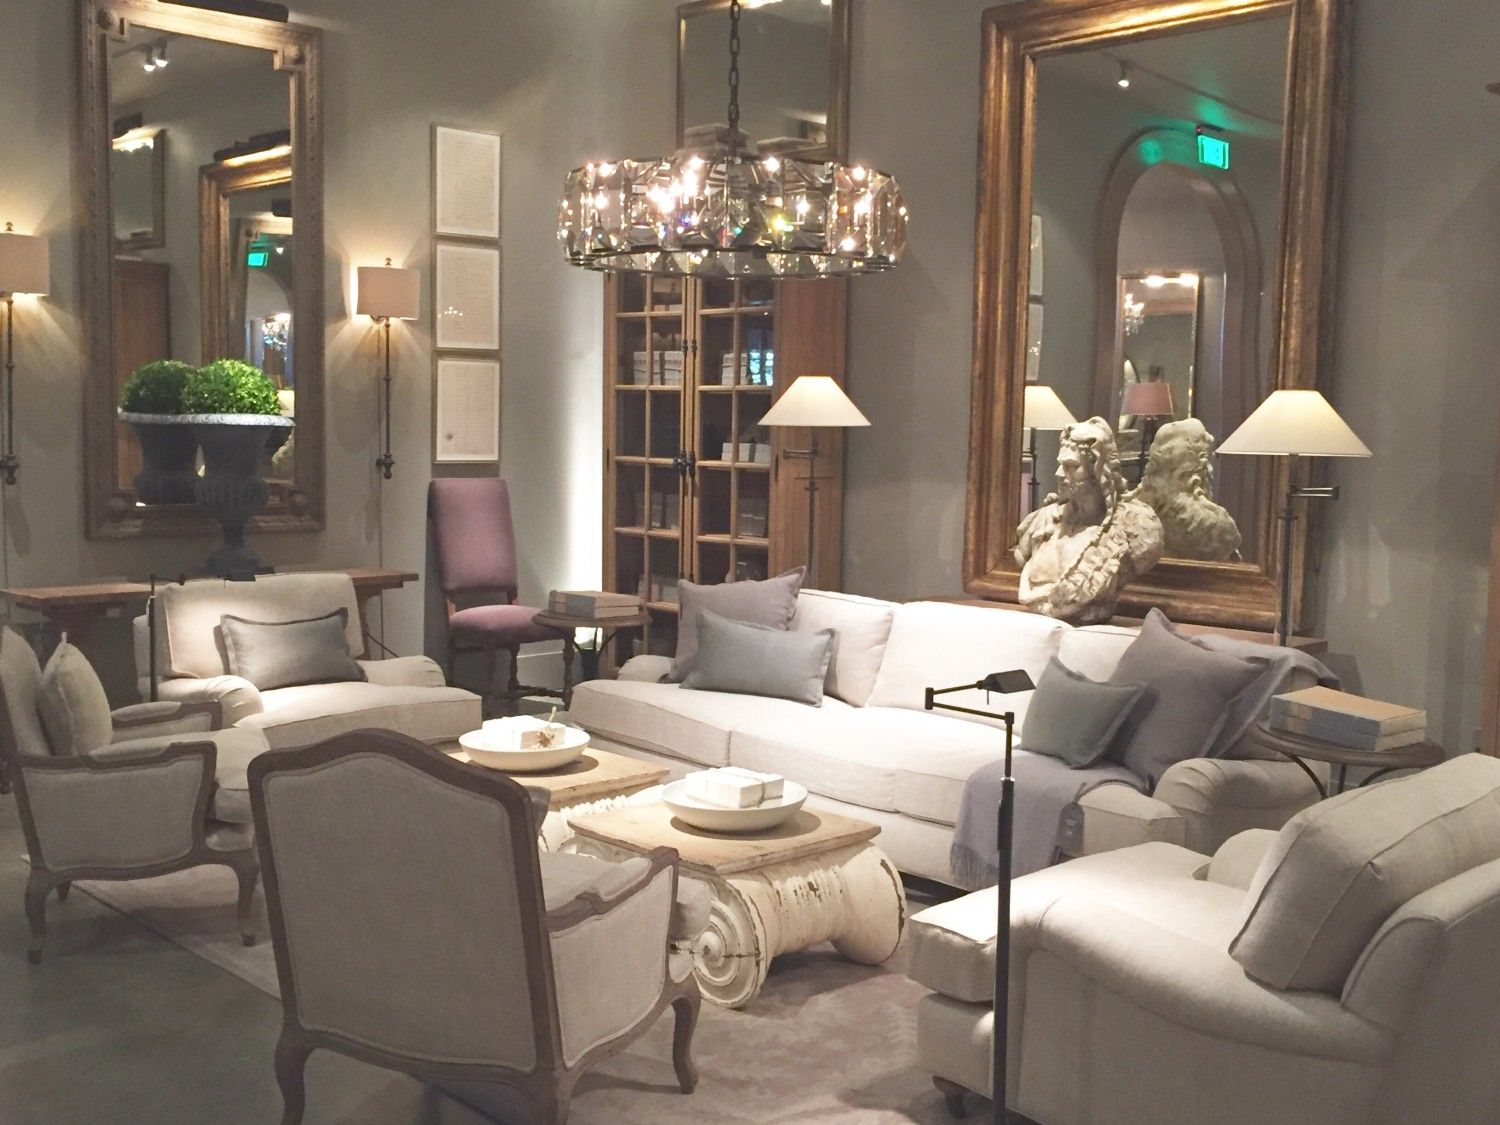 Recently, I Made A Trip To The New Restoration Hardware Store In Tampa,  Which